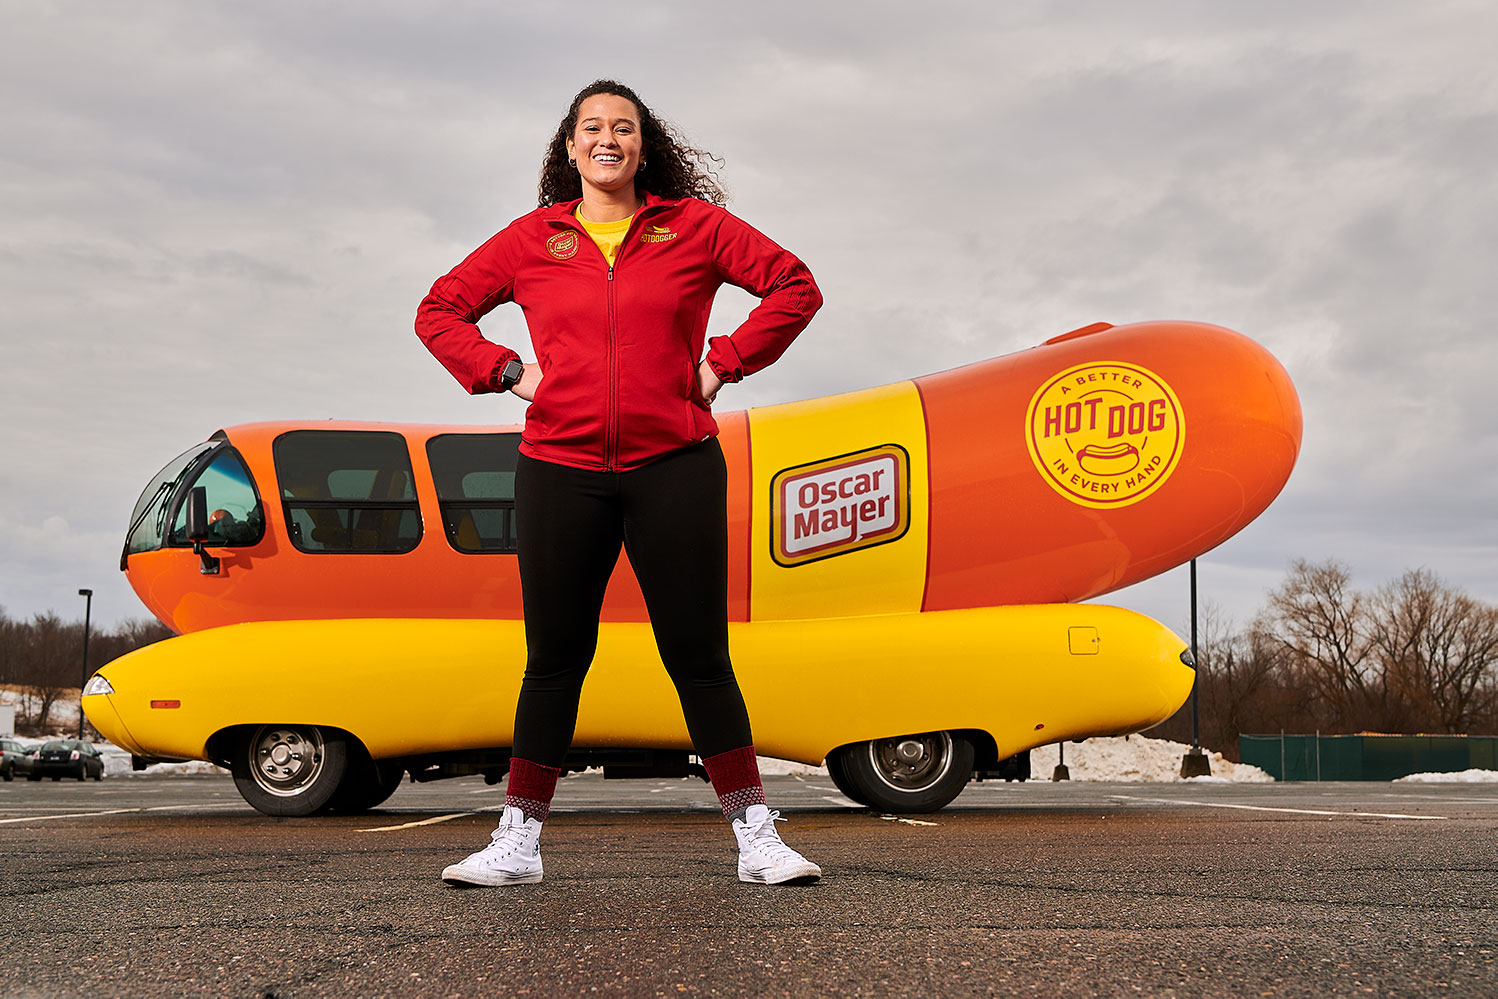 Gabriella Medvick in front of the wiener mobile